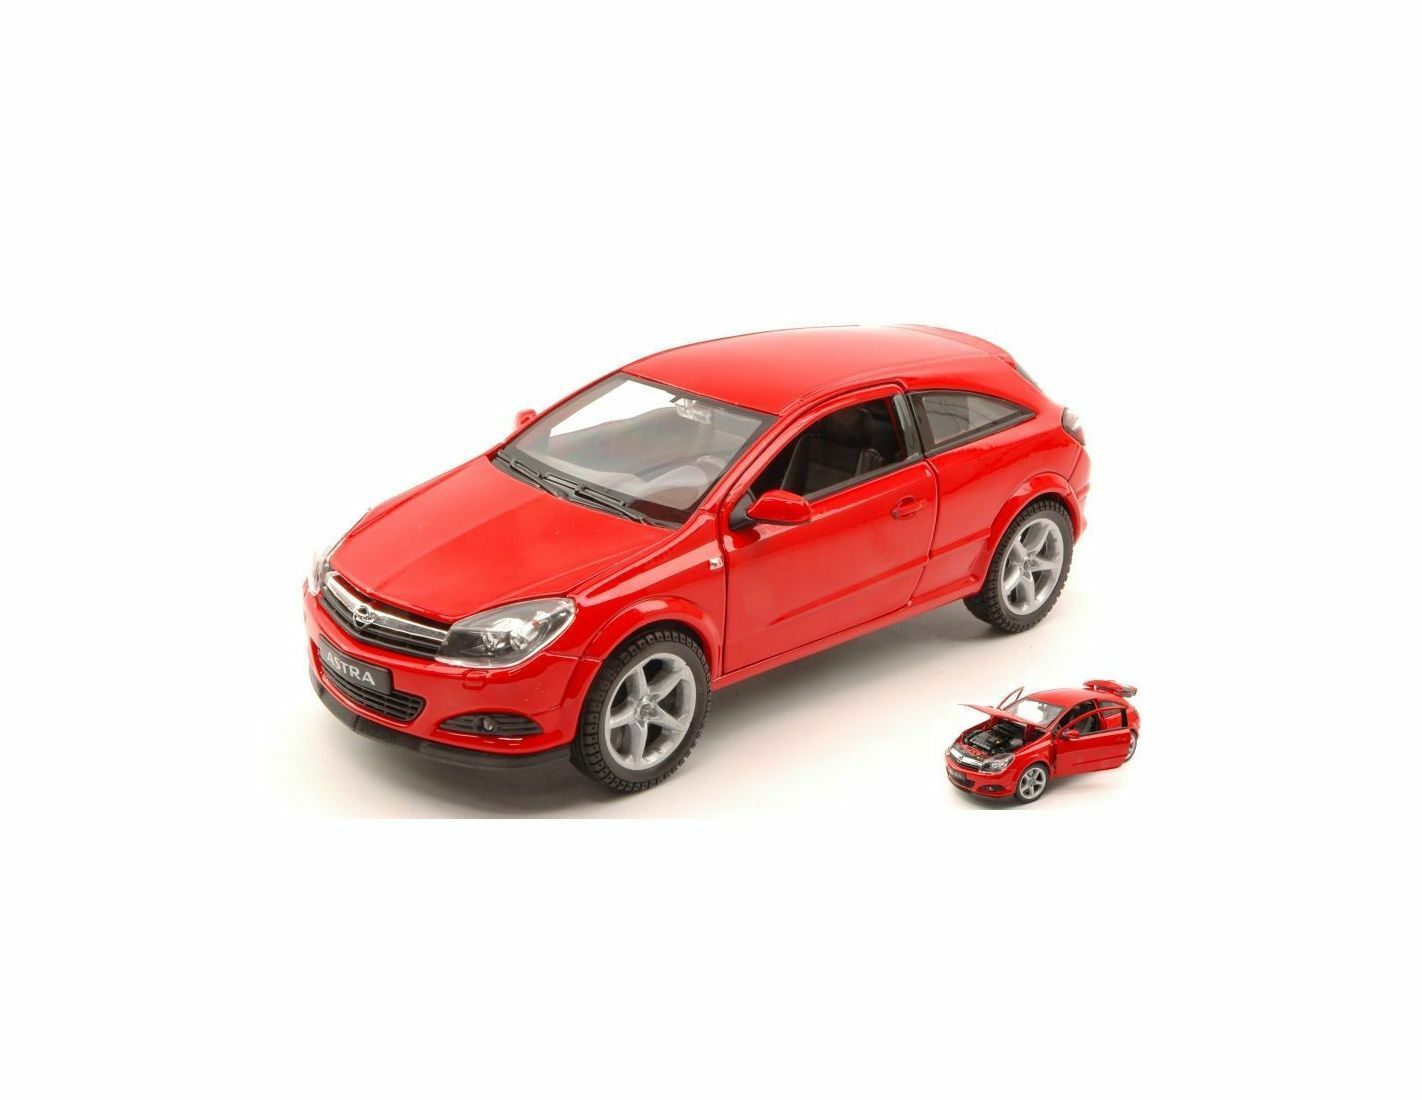 Welly WE2563R OPEL ASTRA GTC 2005 rouge 1 18 Modellino